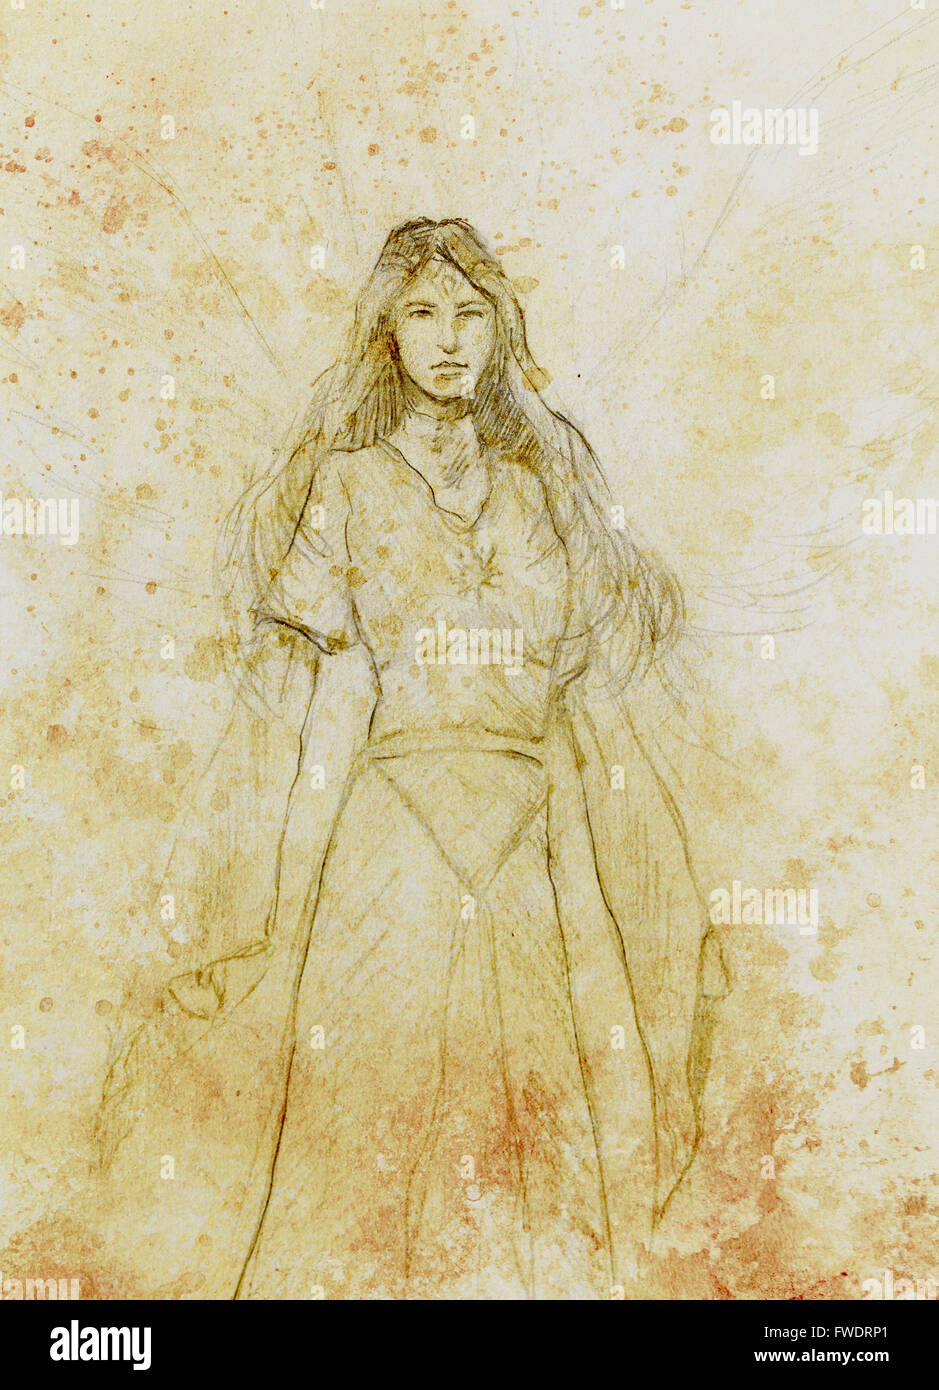 Drawing of mystical angel woman in beautiful historic dress stock image